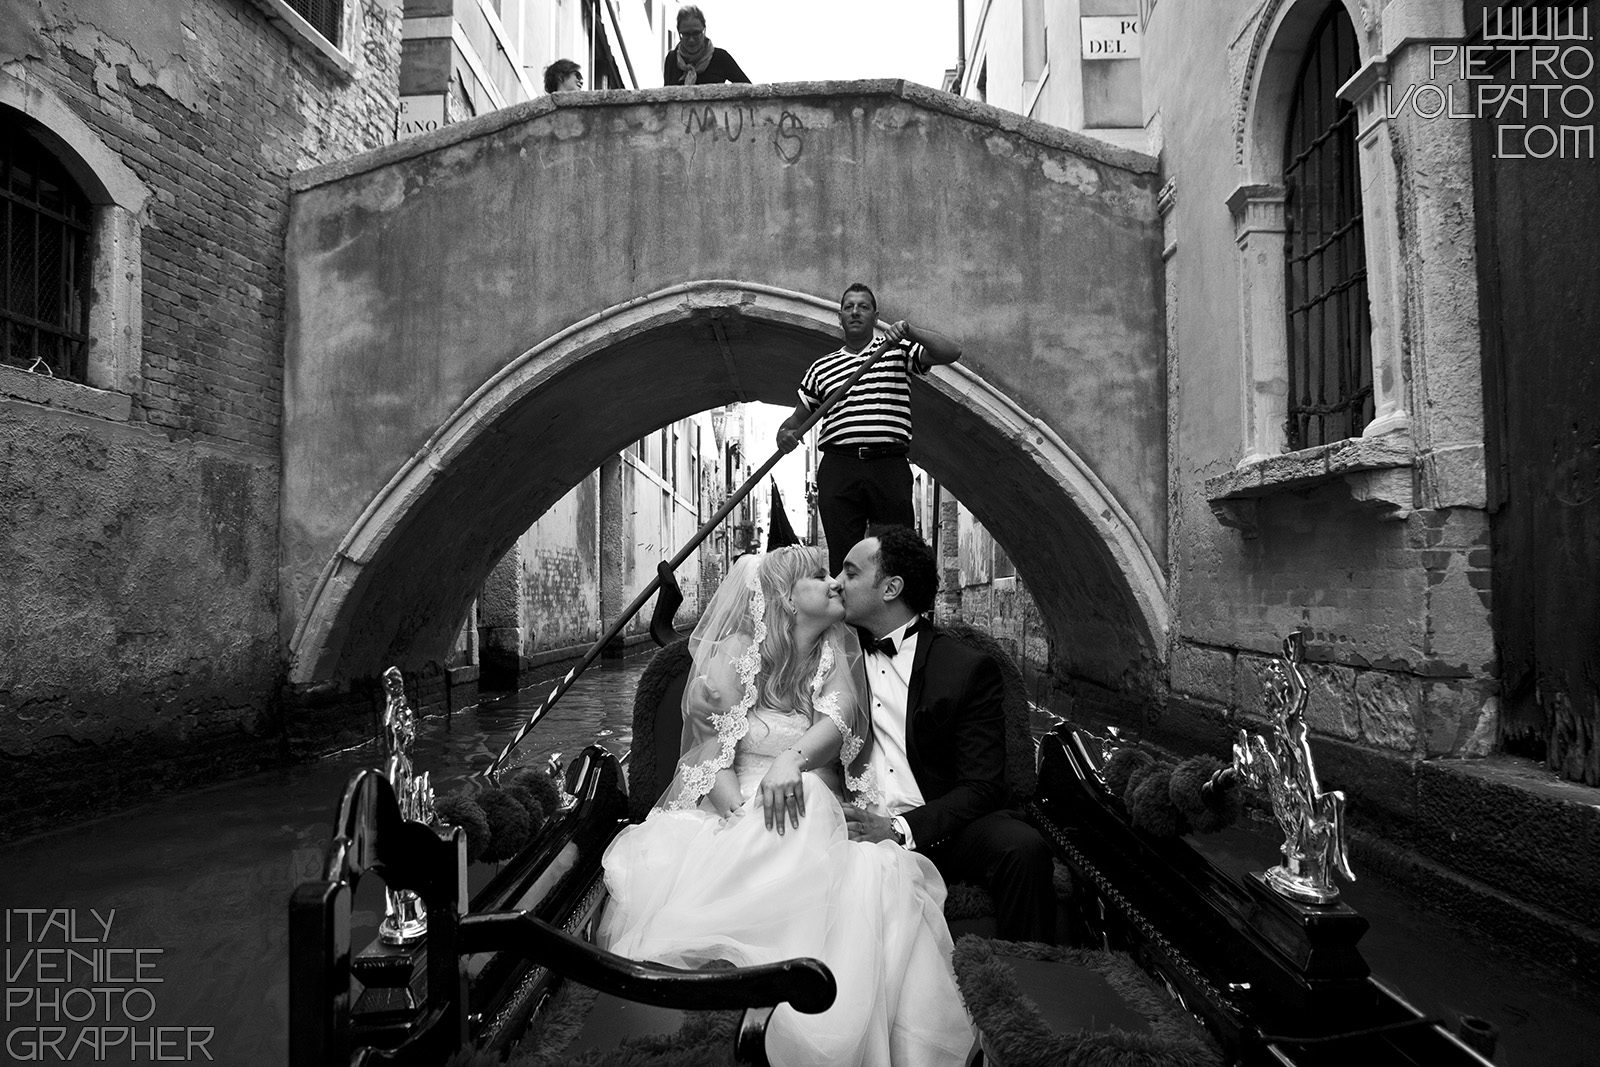 Hire a photographer in Venice Italy for honeymoon photo shoot during a walking tour and gondola ride ~ Romantic and fun photo walk in Venice